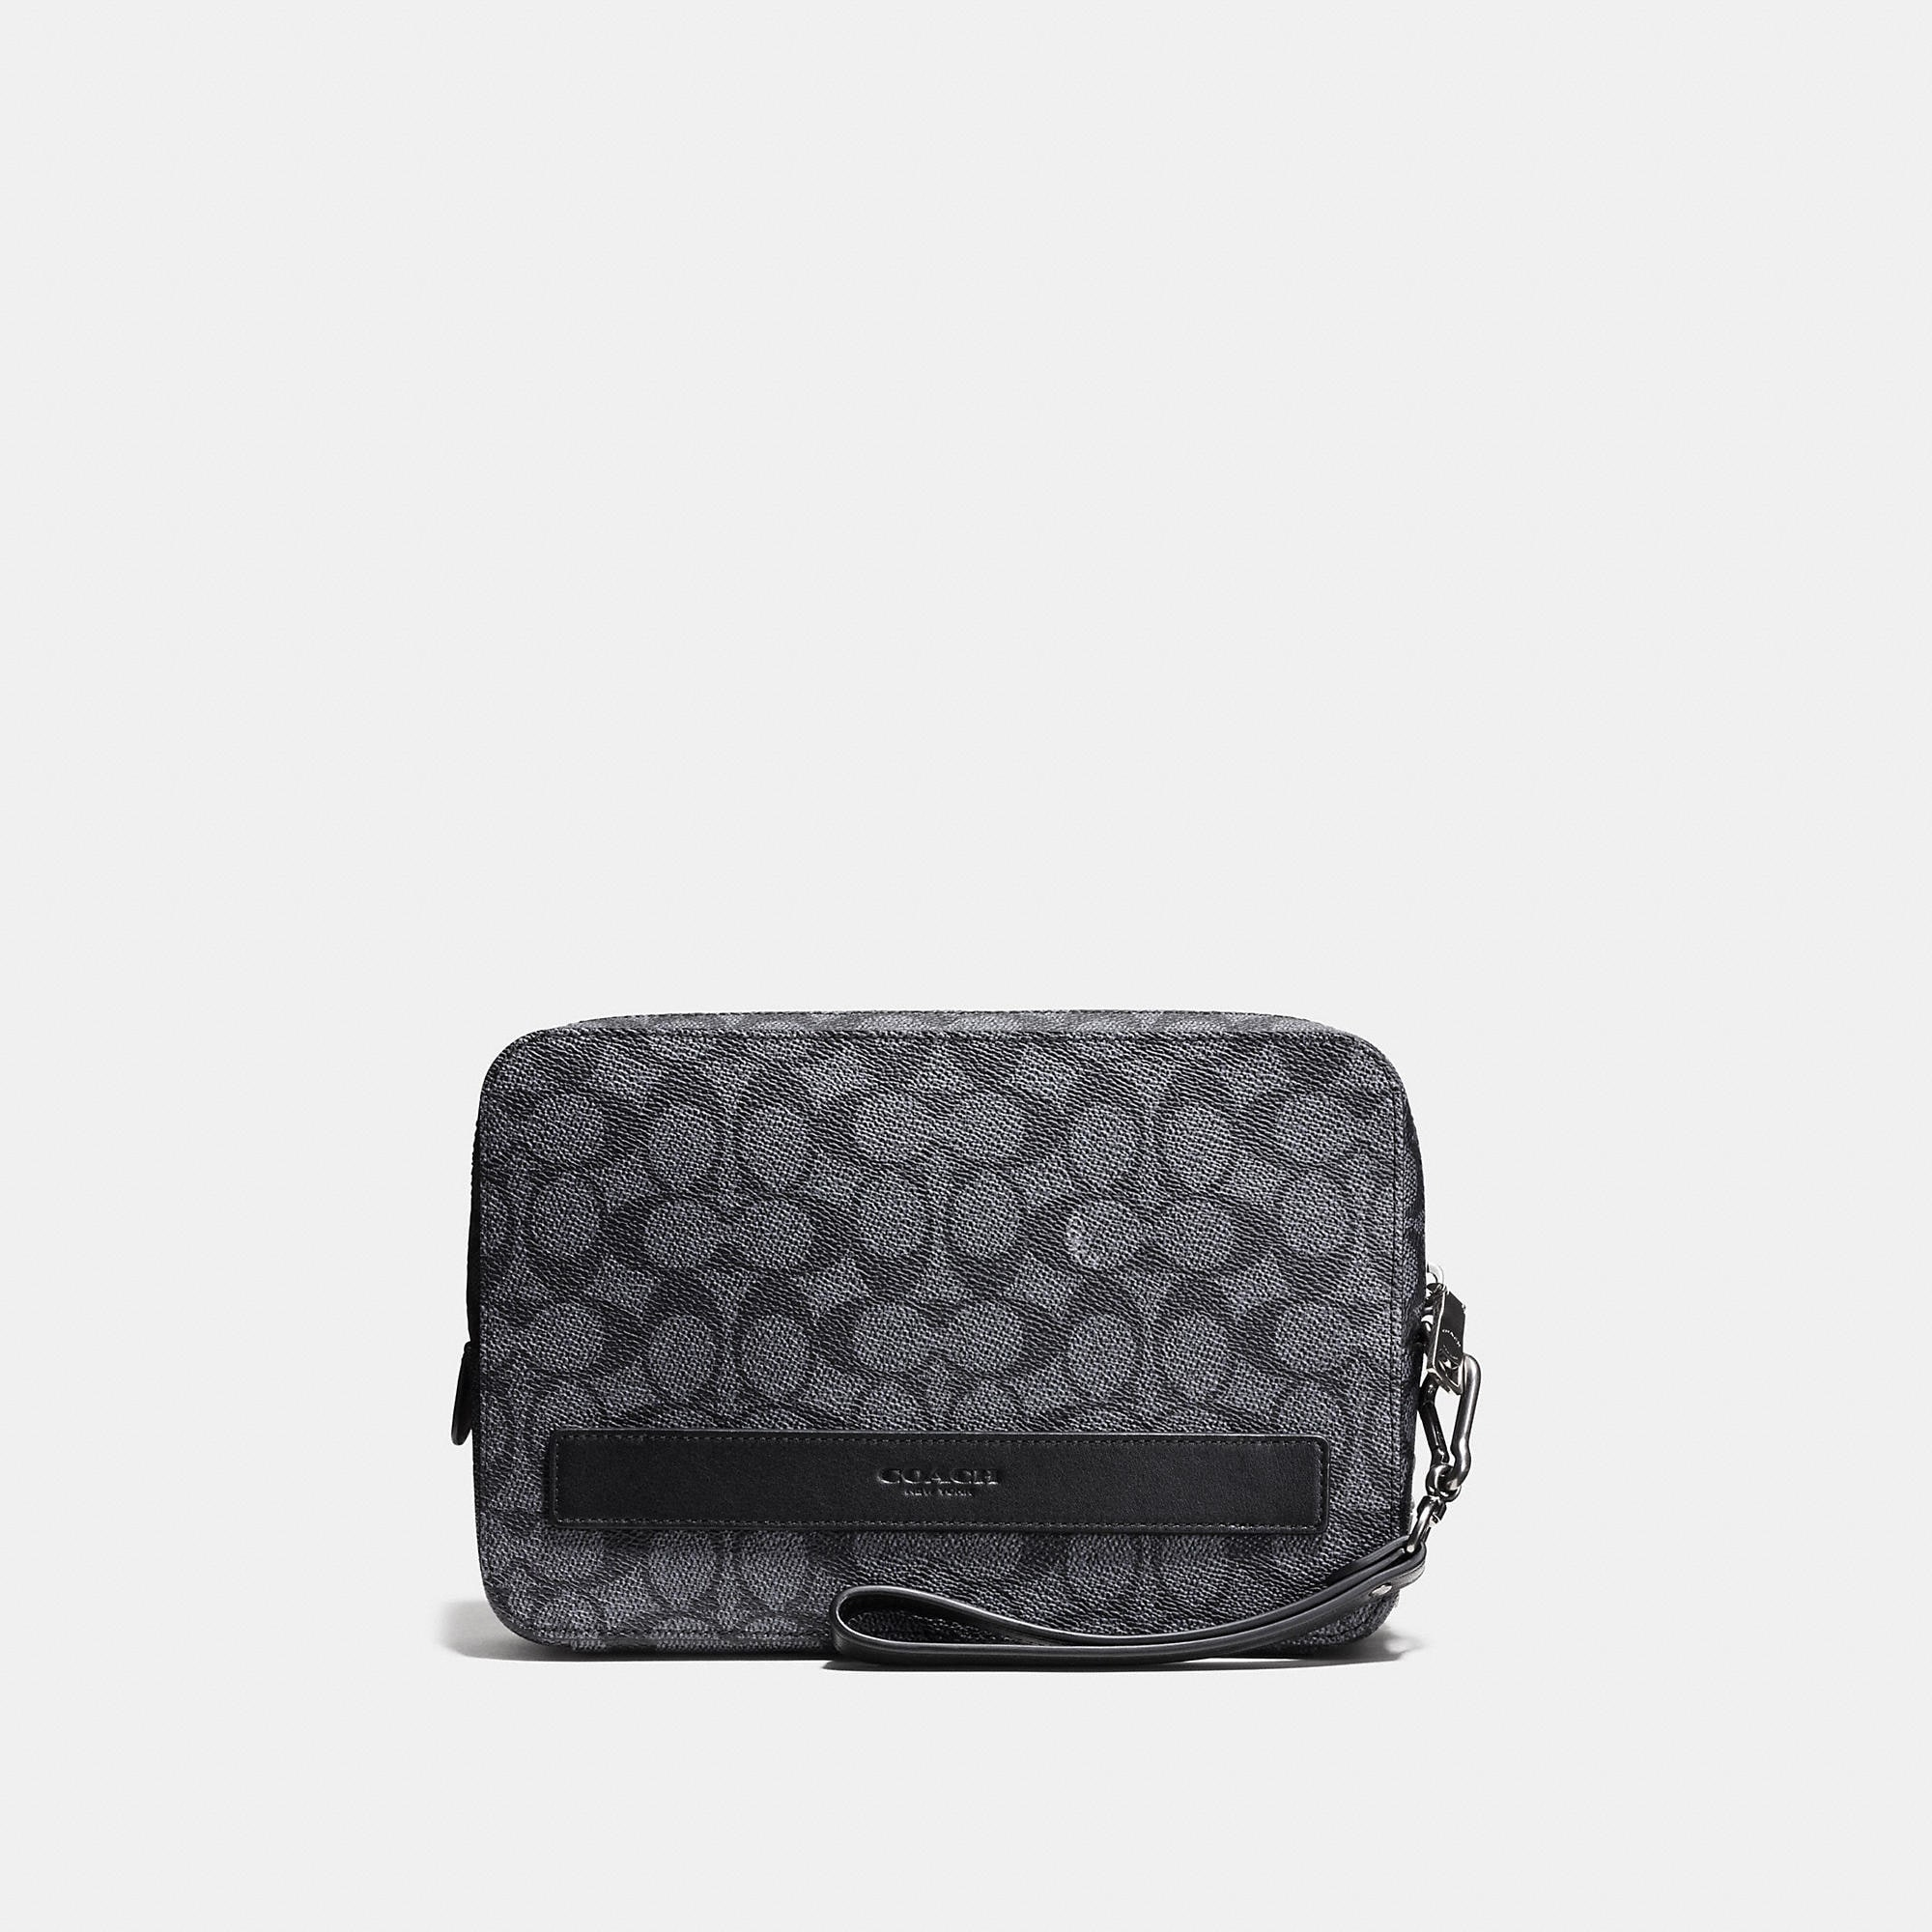 Coach Pouchette In Signature Coated Canvas